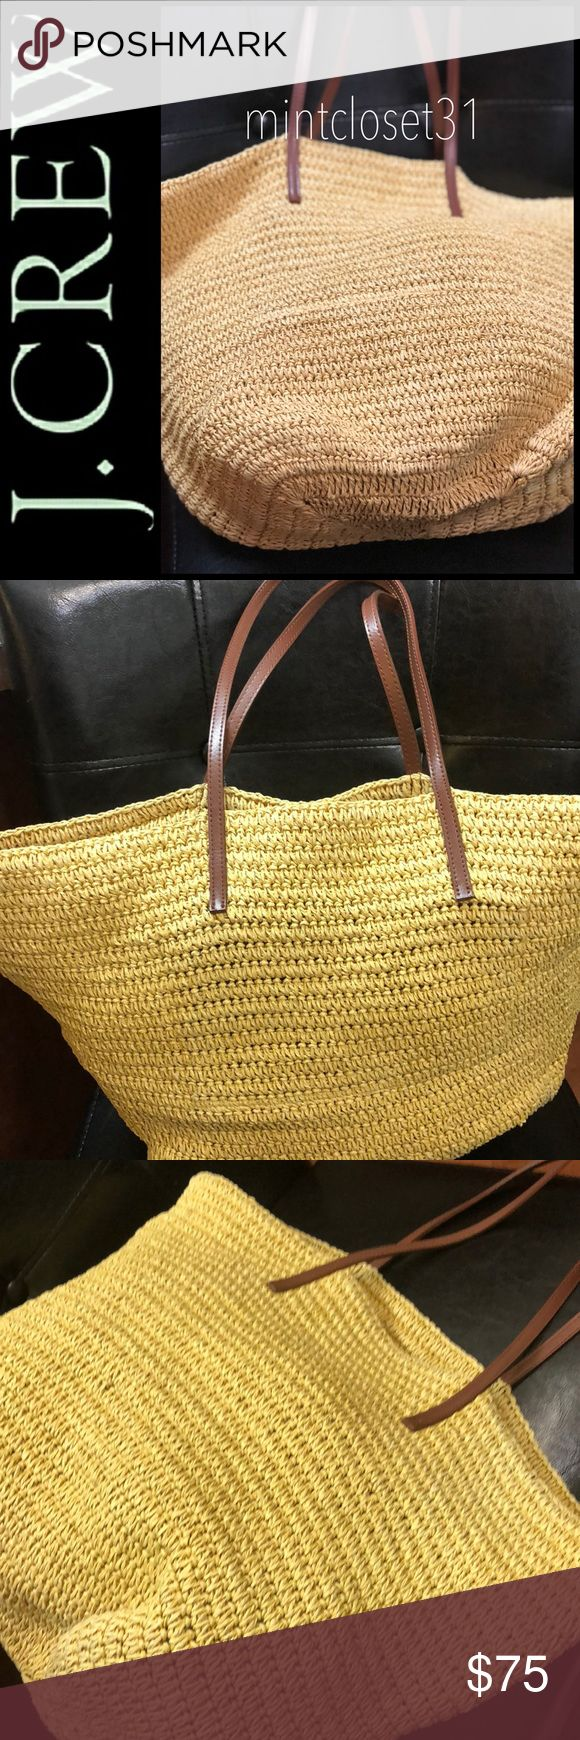 J. Crew Straw Shopper Tote Bag J. Crew Signature Purse in Gorgeous Straw Style with Leather Trim! Features Hand Crocheted In Resilient 100% Straw with 100% Leather Trim! Open Top Opens to Roomy Interior with Slip Pocket! Perfect for that Trip To the Beach or Simply Use as Market Shopper Tote!  Double shoulder strap (10 inches Drop) with Classic Brown Tonal Stitching Details! Used In Good Condition! J. Crew Bags Totes